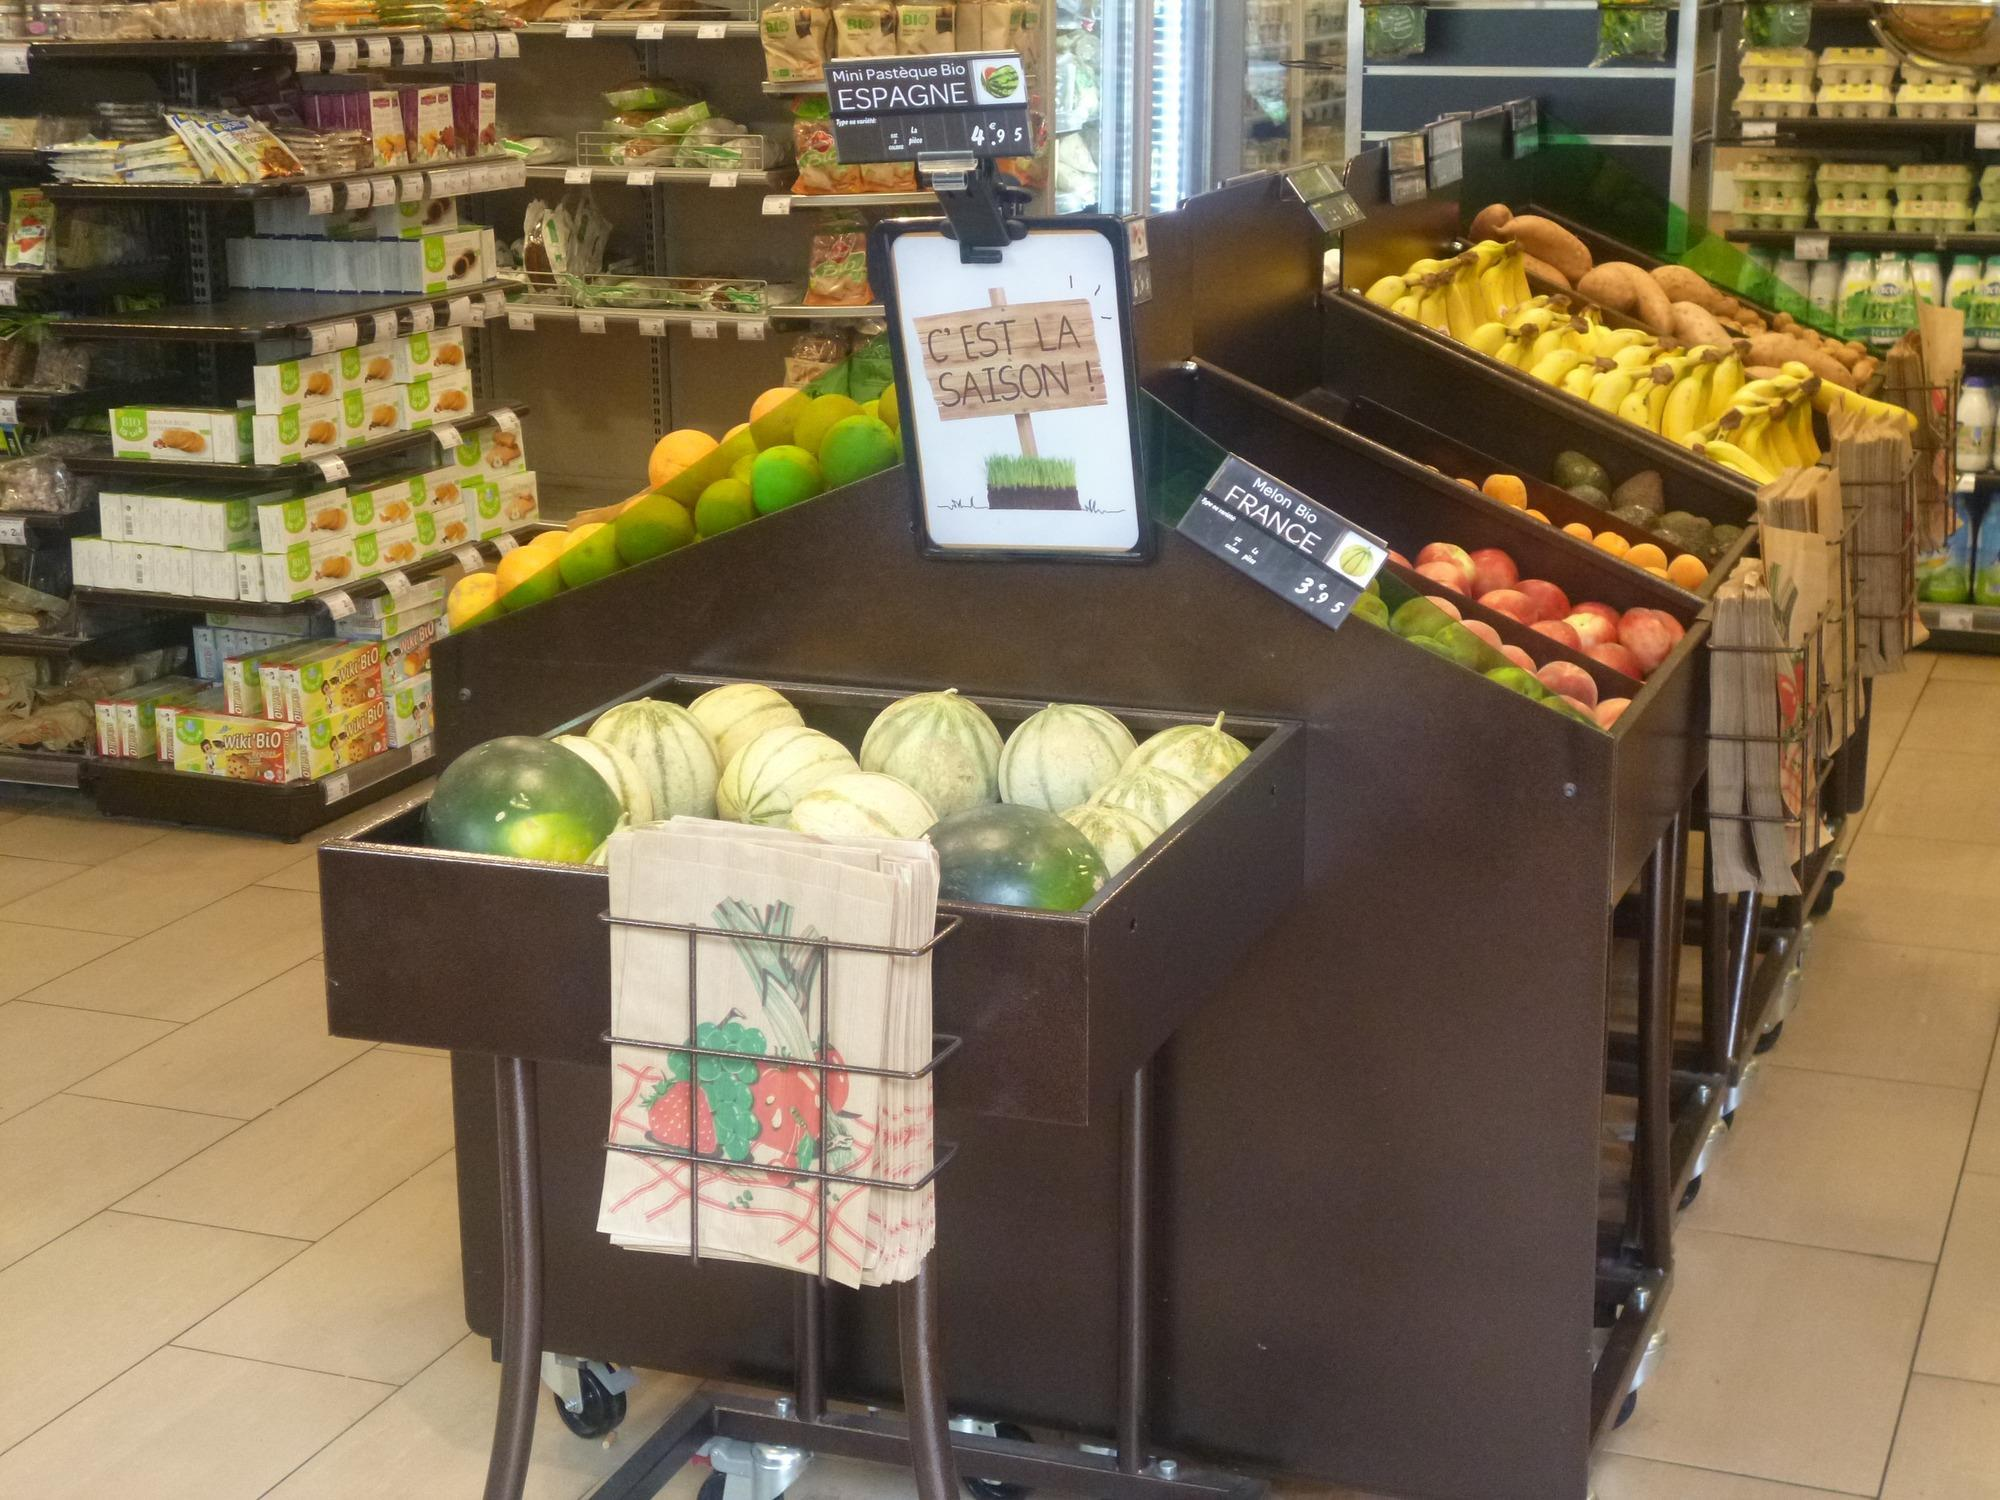 Analysis: Carrefour's first dedicated organic store